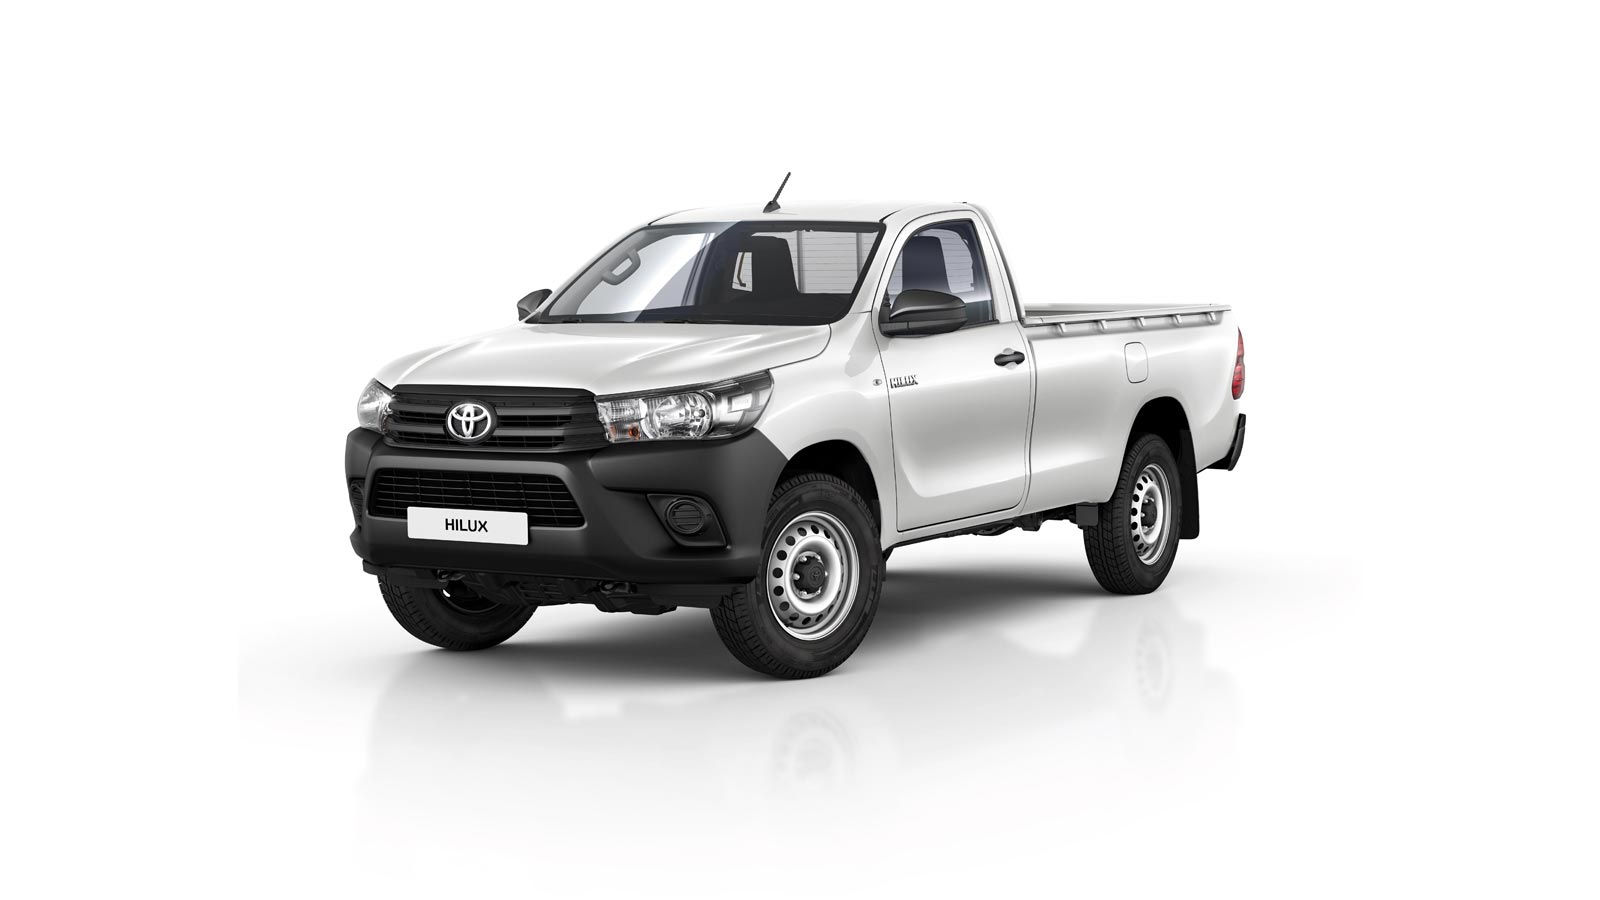 toyota-Hilux-2016-exterior-tme-014-a-ful